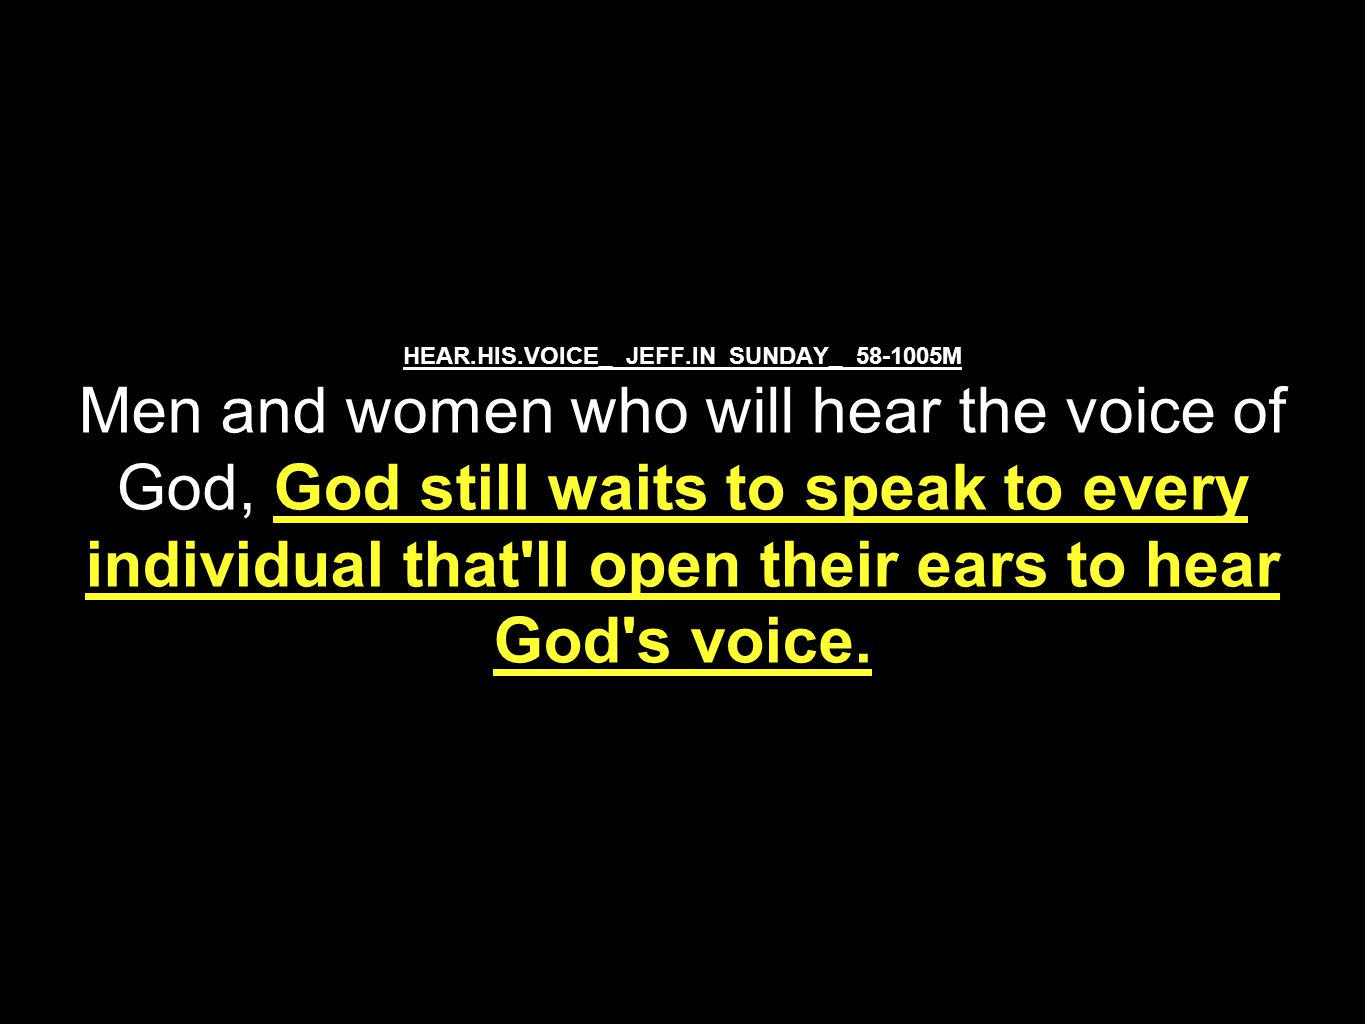 HEAR.HIS.VOICE_ JEFF.IN SUNDAY_ 58-1005M Men and women who will hear the voice of God, God still waits to speak to every individual that ll open their ears to hear God s voice.